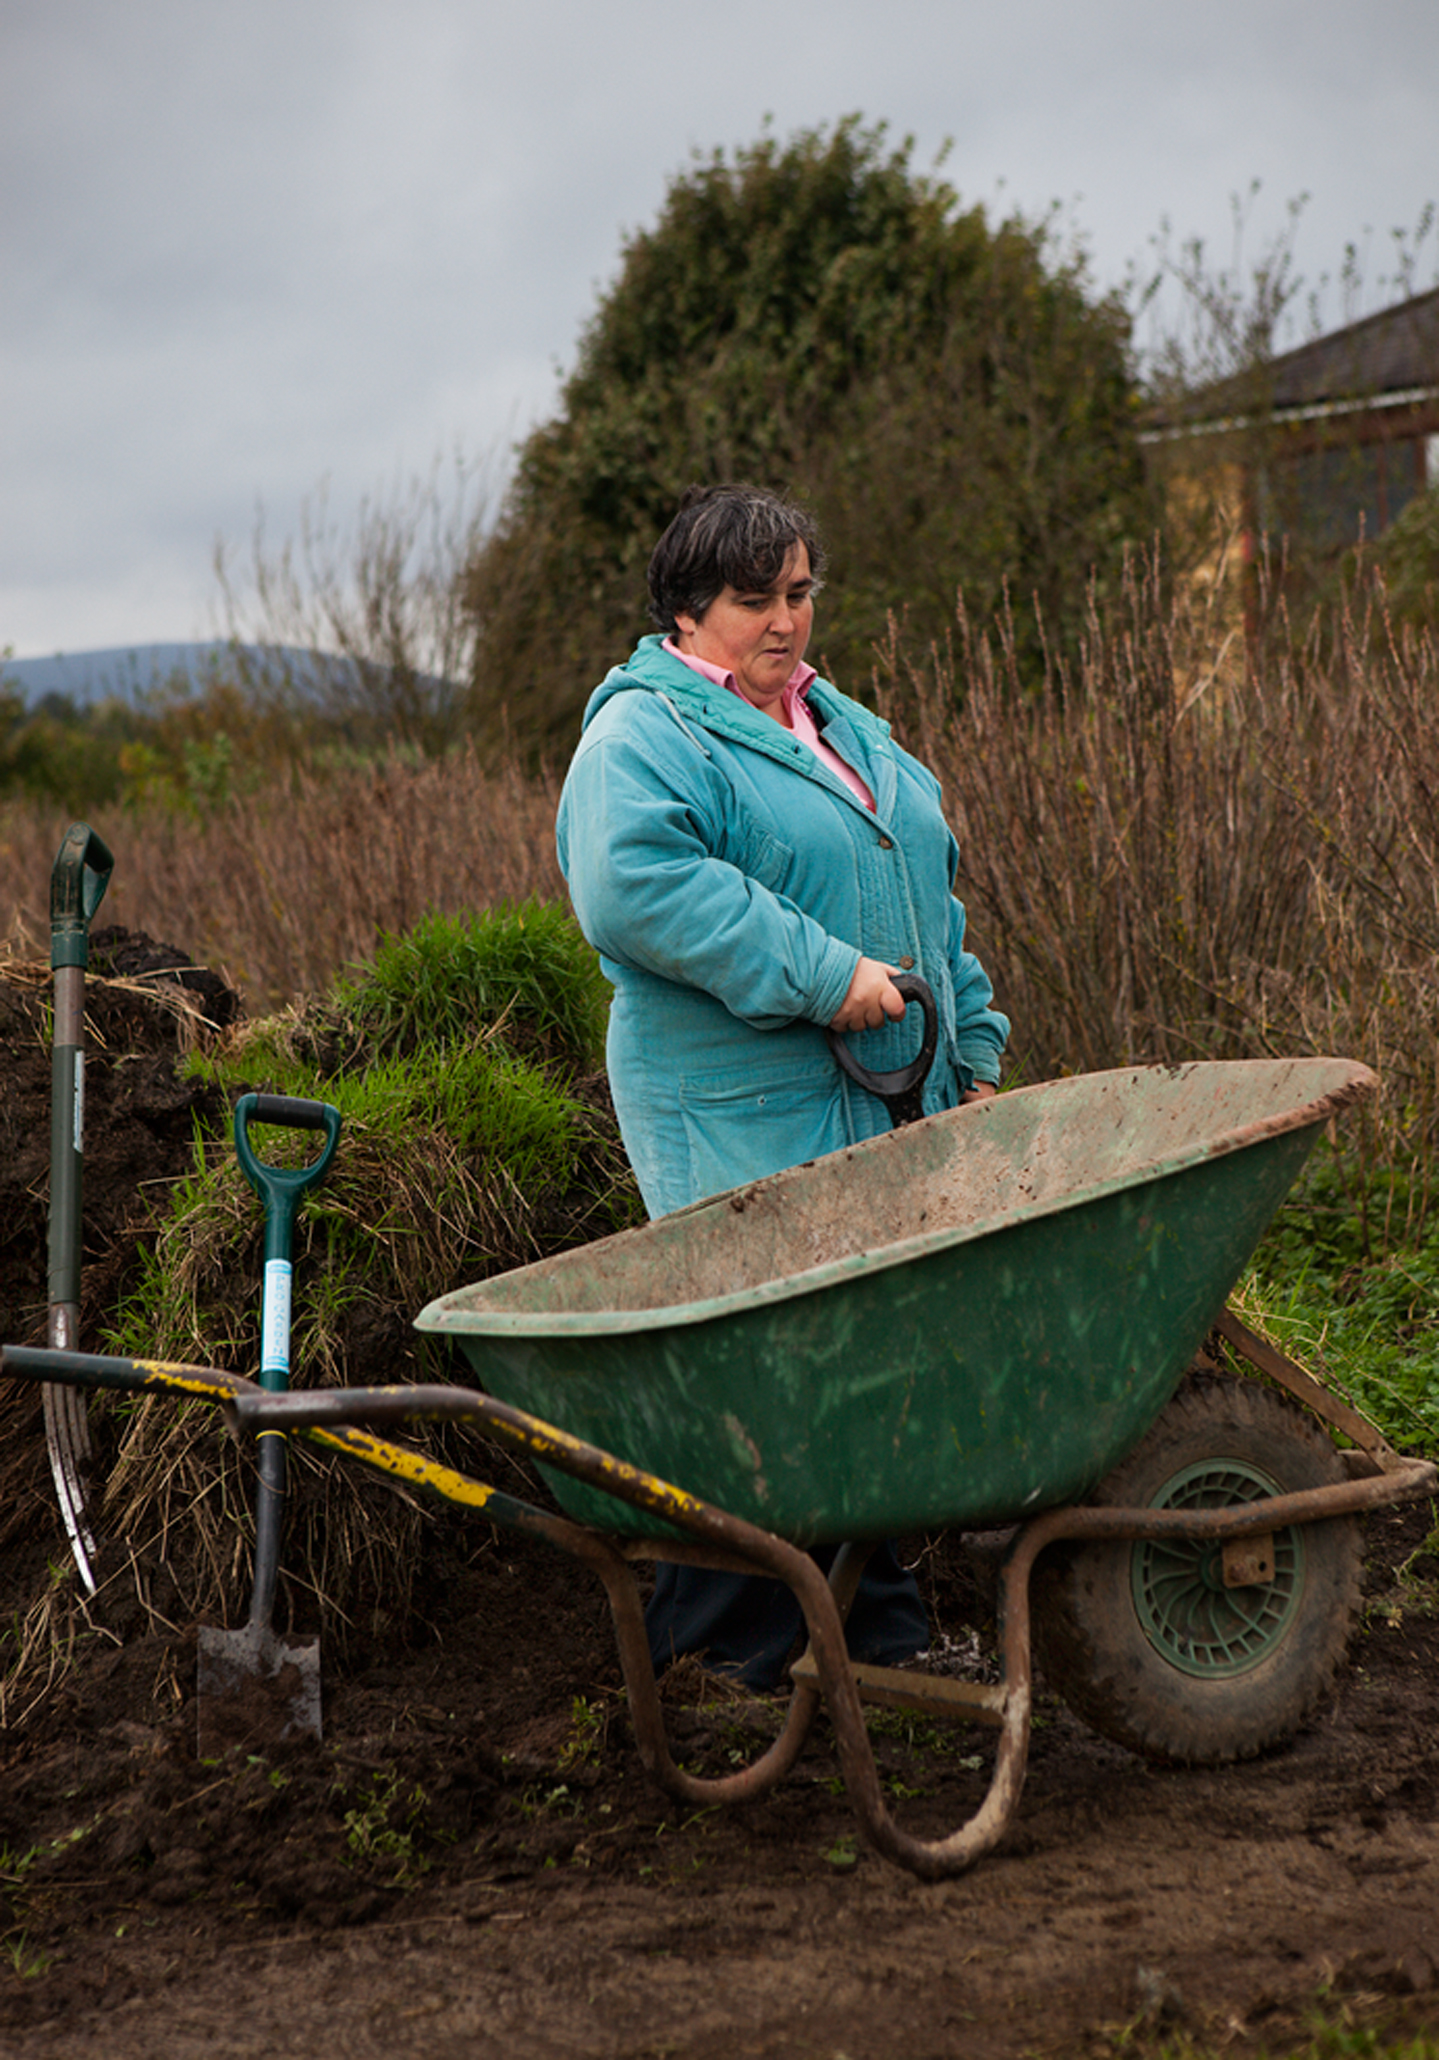 Mary and the Wheelbarrow